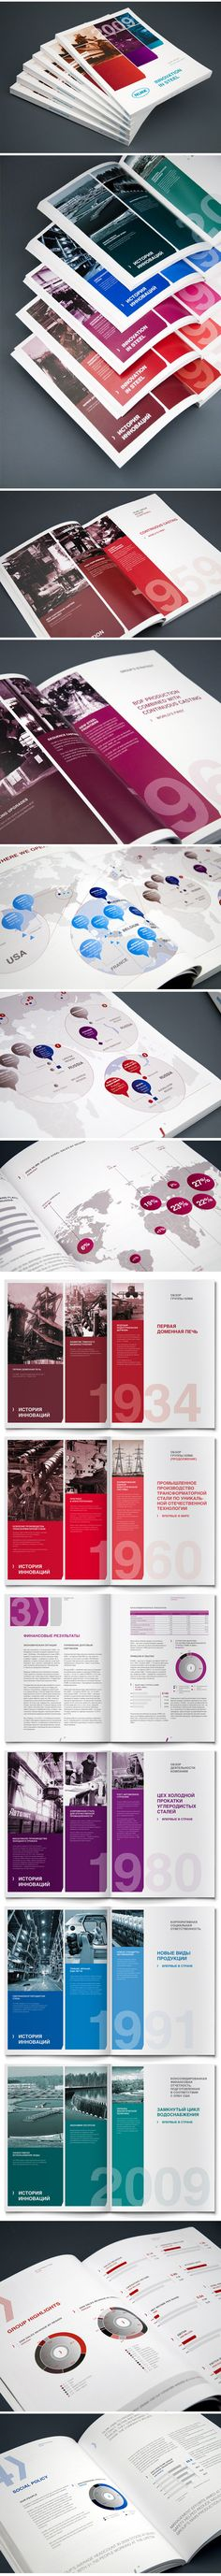 annual report NLMK by Andrew Gorkovenko, via Behance